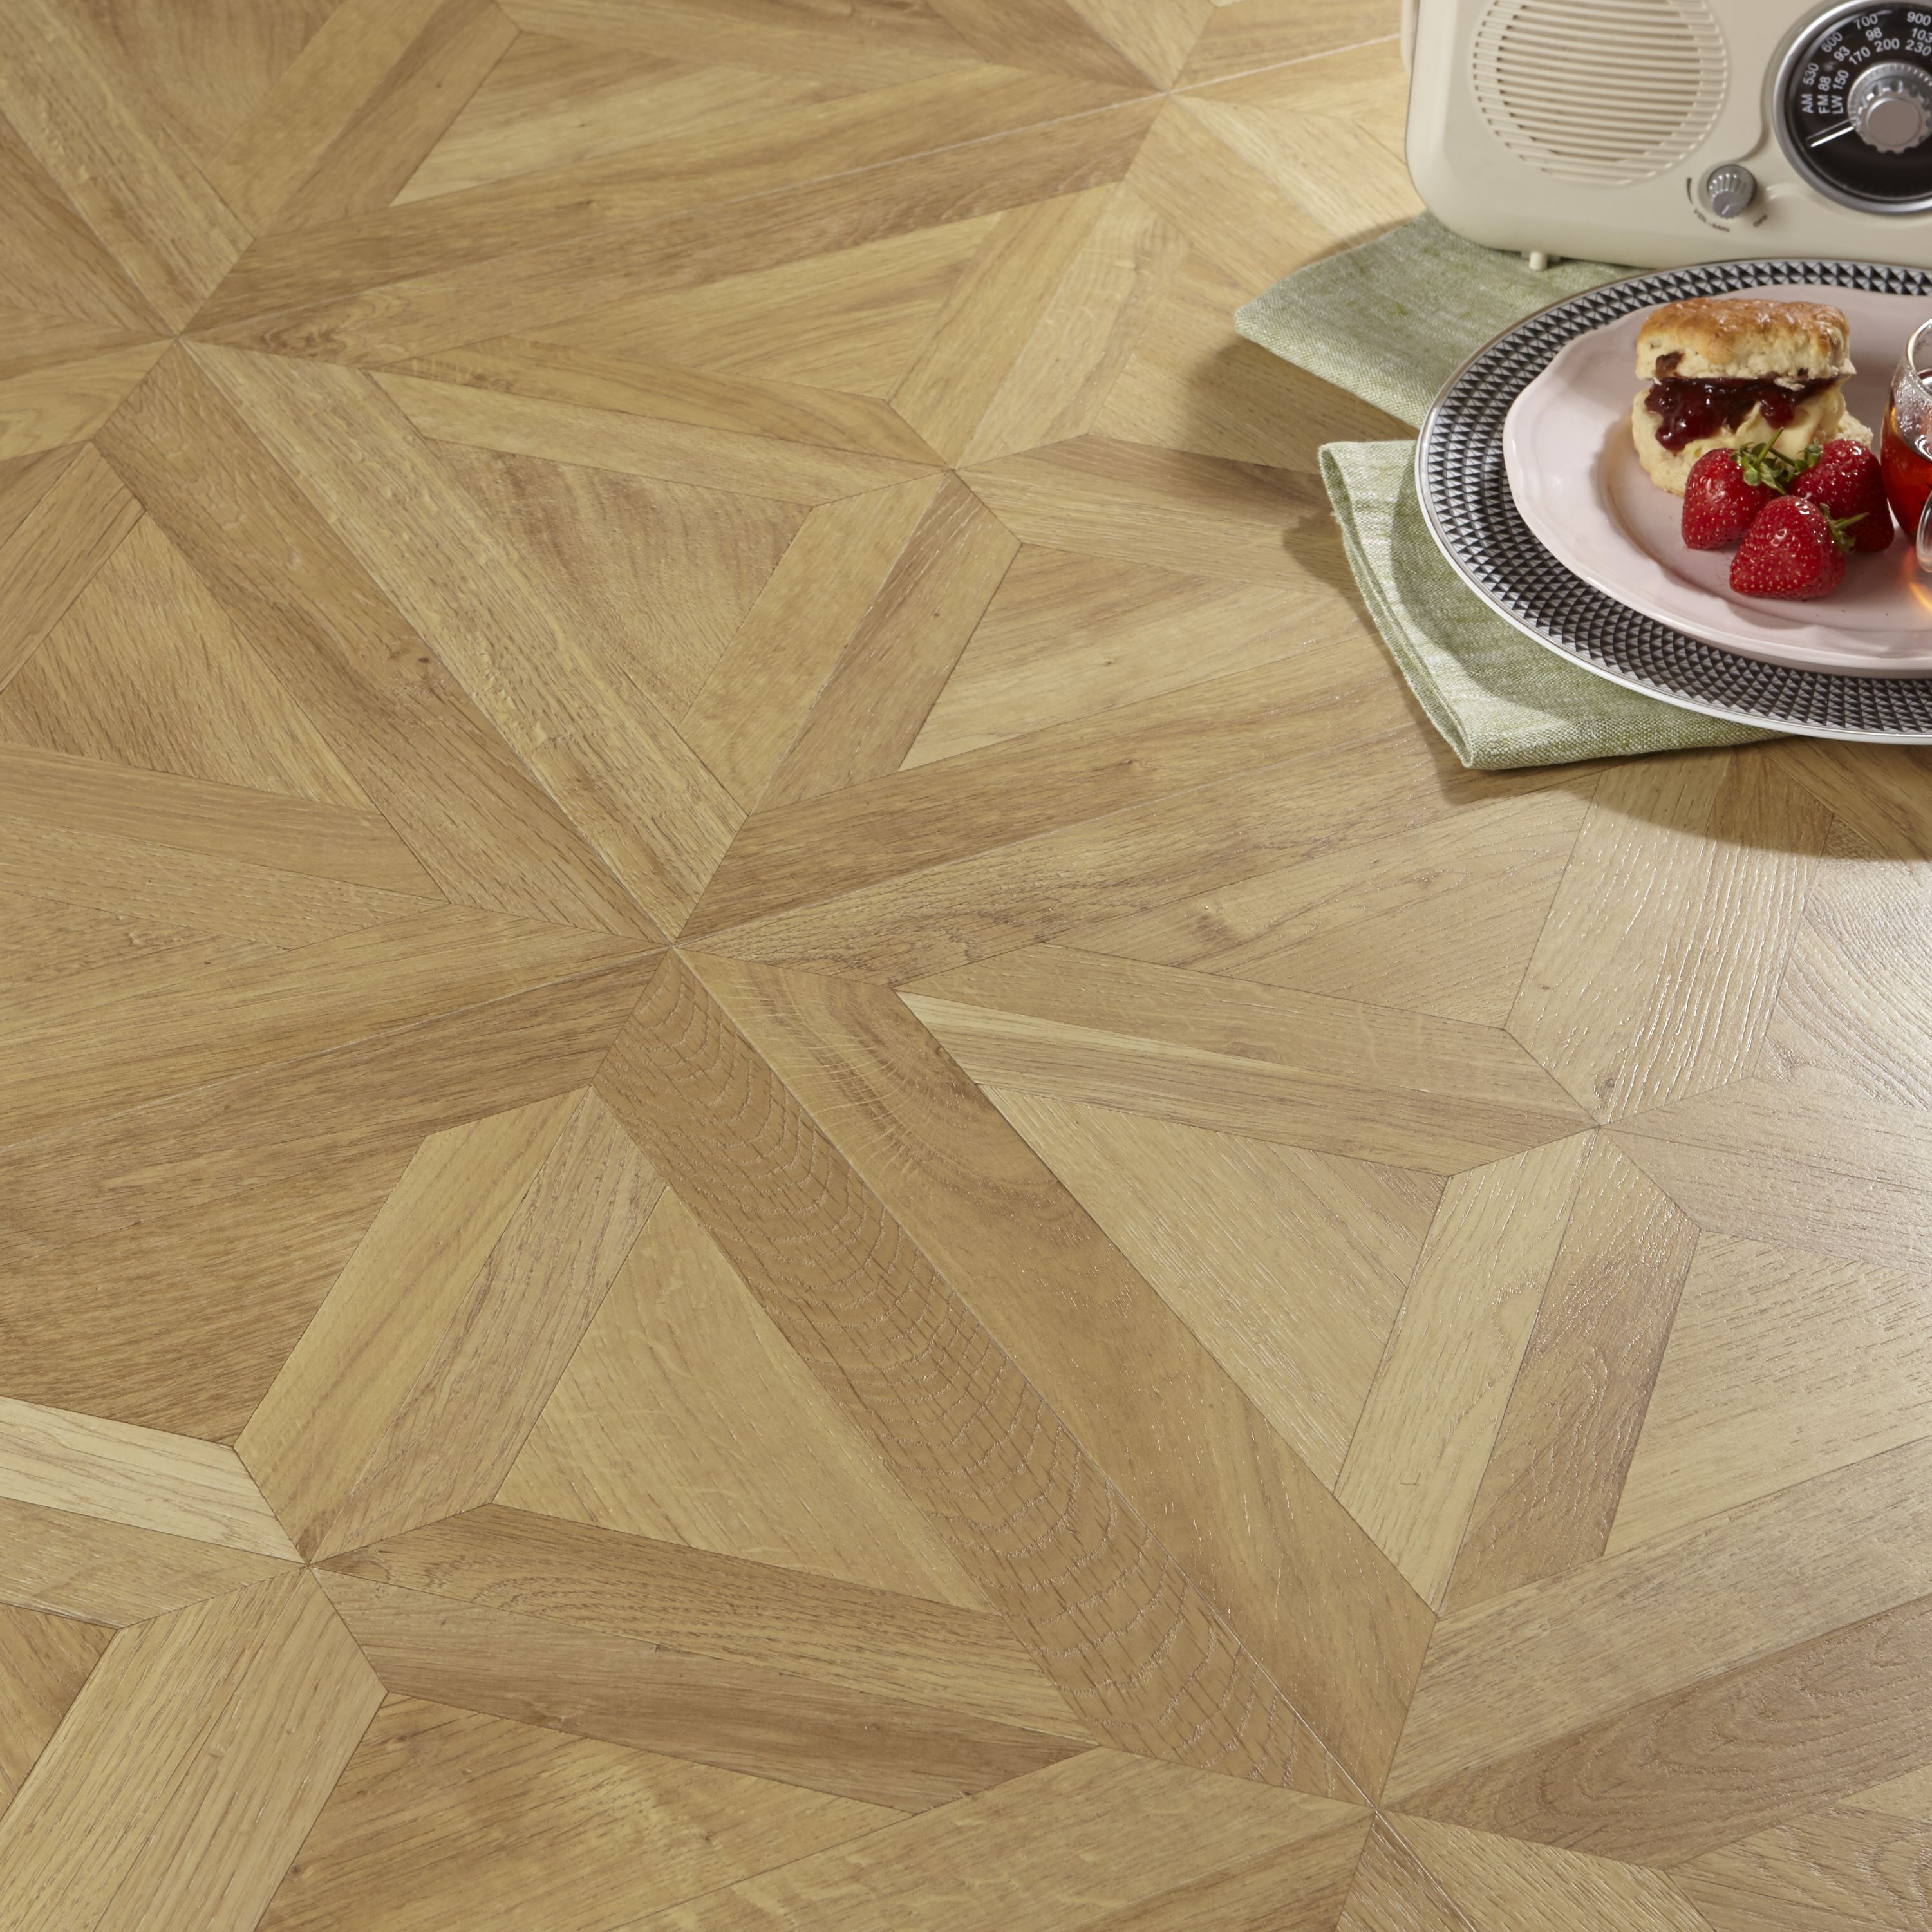 Staccato Oak Parquet Effect Laminate Flooring 1 86 M² Pack